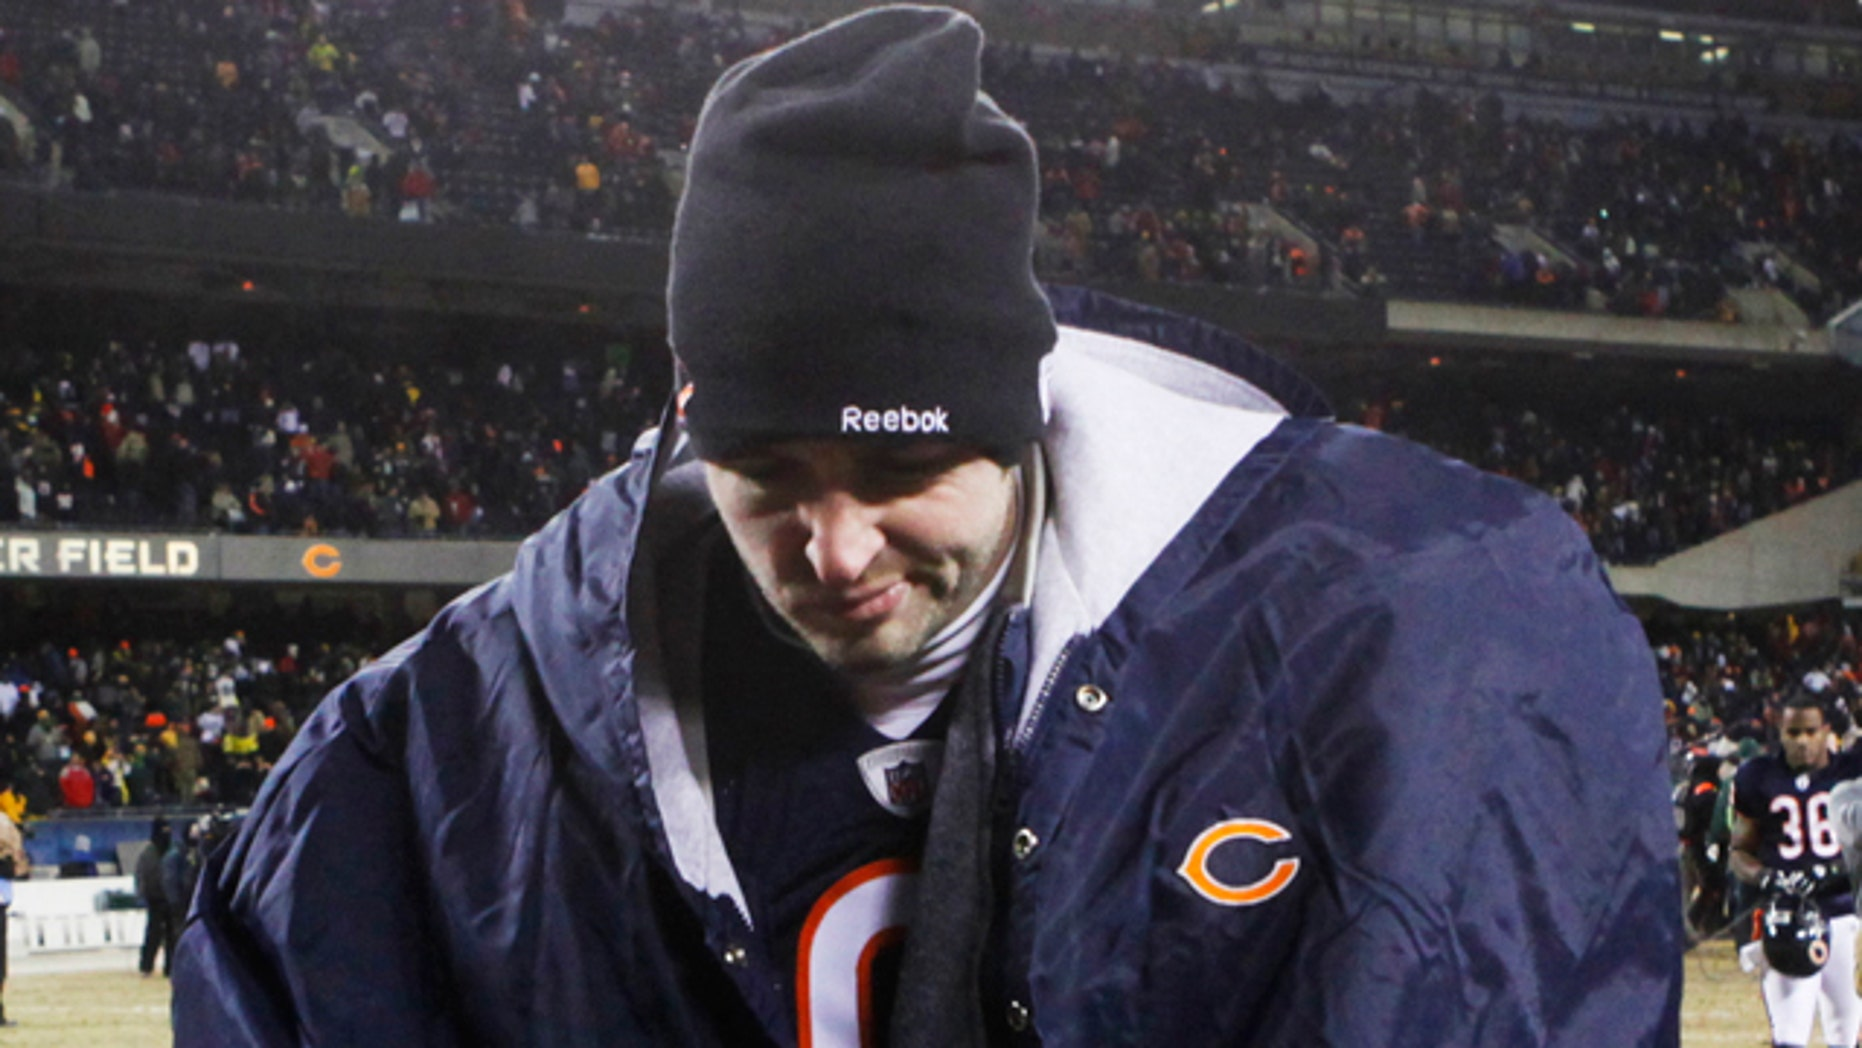 Jan. 23: Chicago Bears quarterback Jay Cutler walks off the field after the NFC Championship NFL football game against the Green Bay Packers in Chicago.